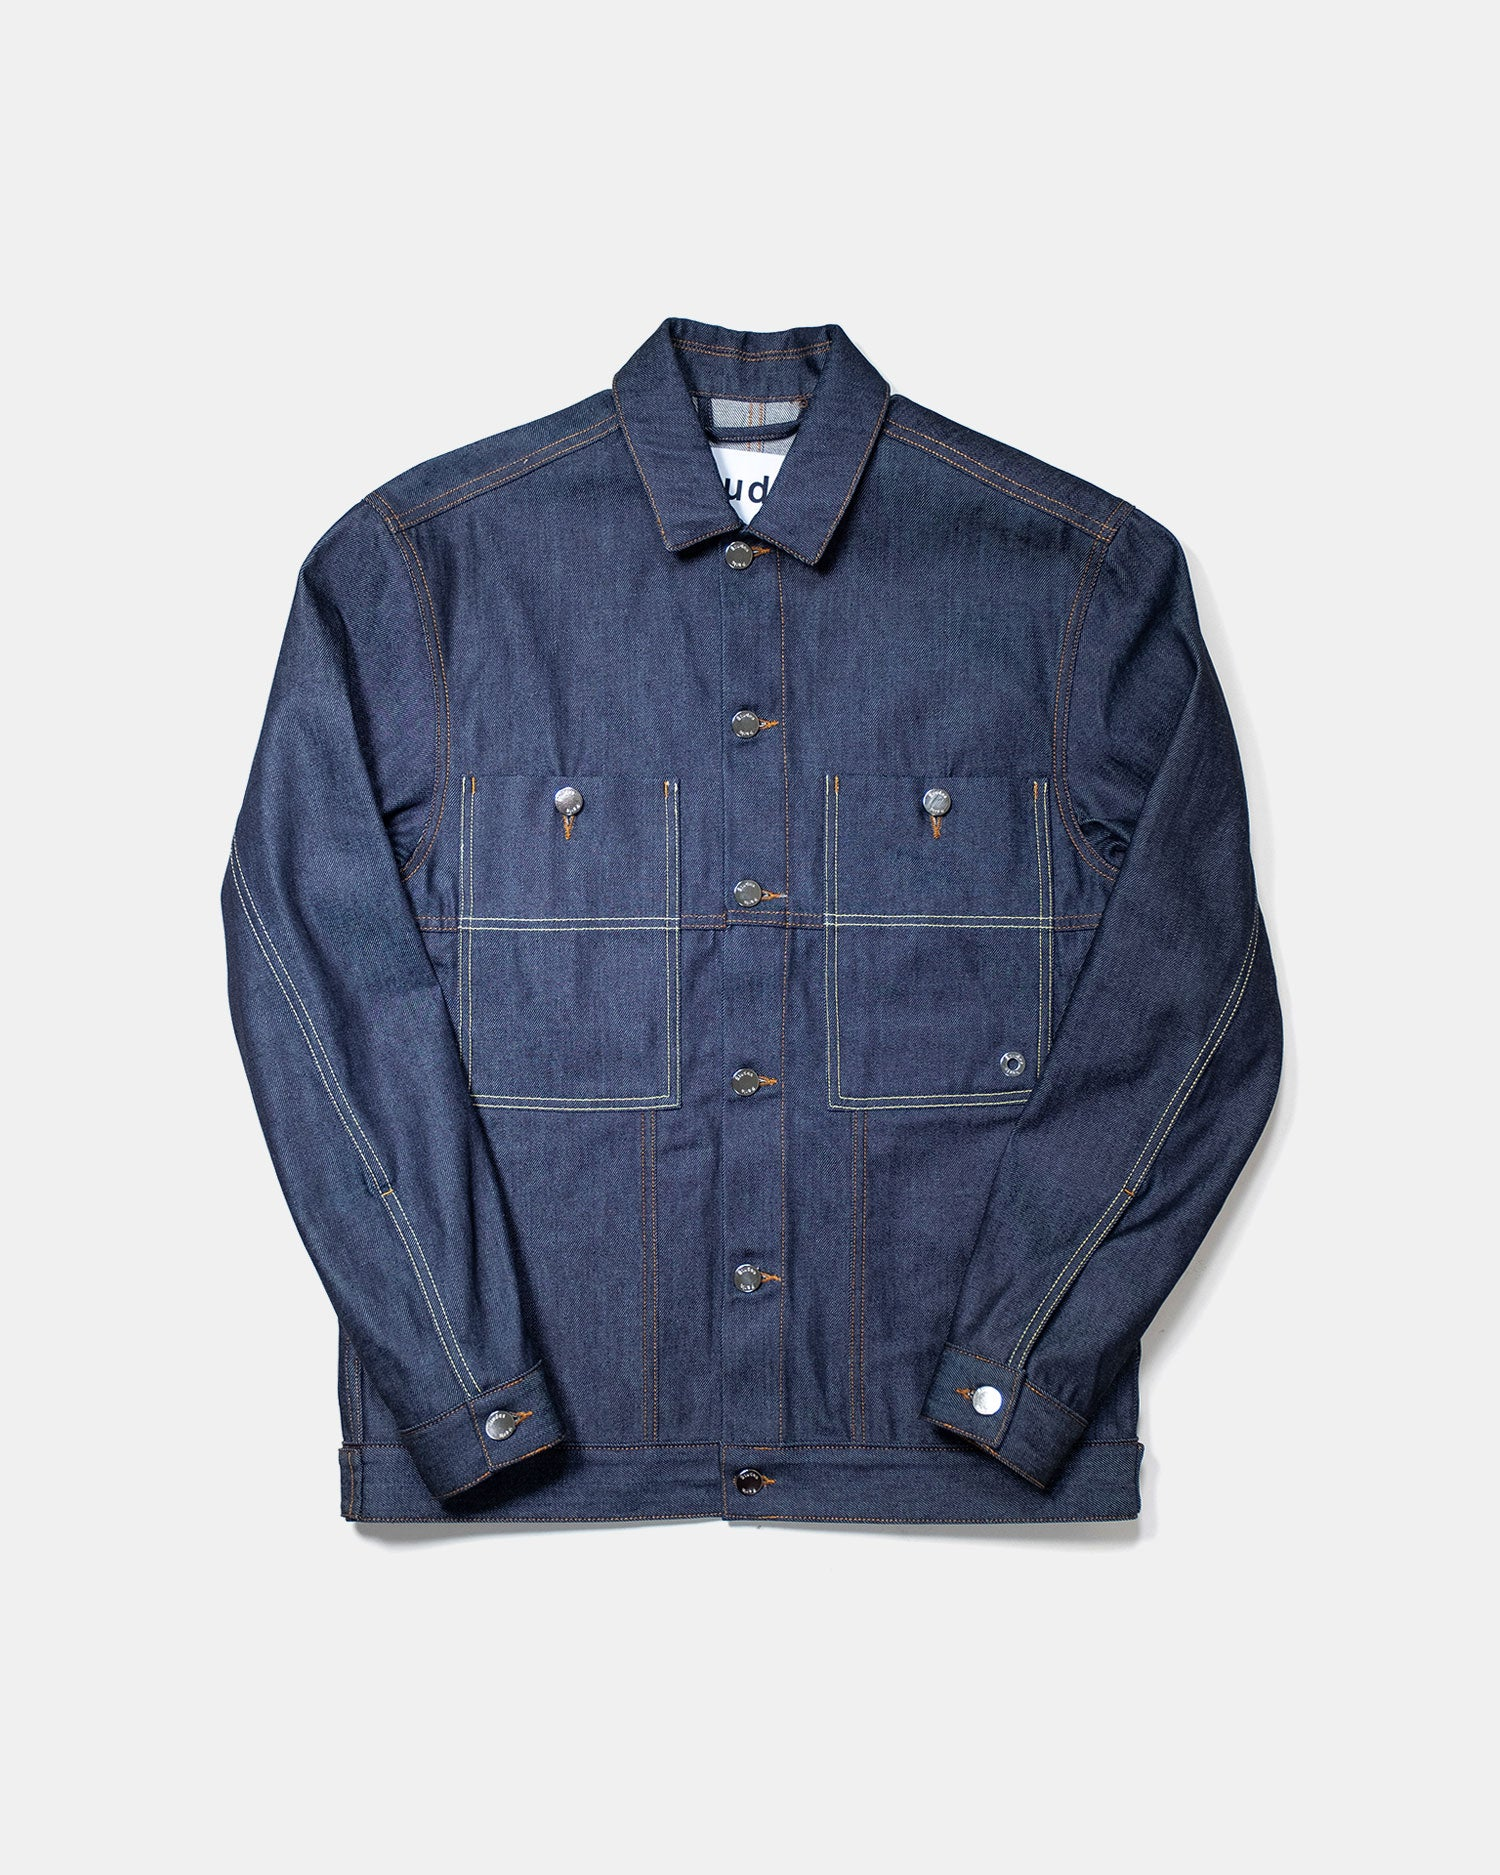 Études Guest Denim Jacket Indigo